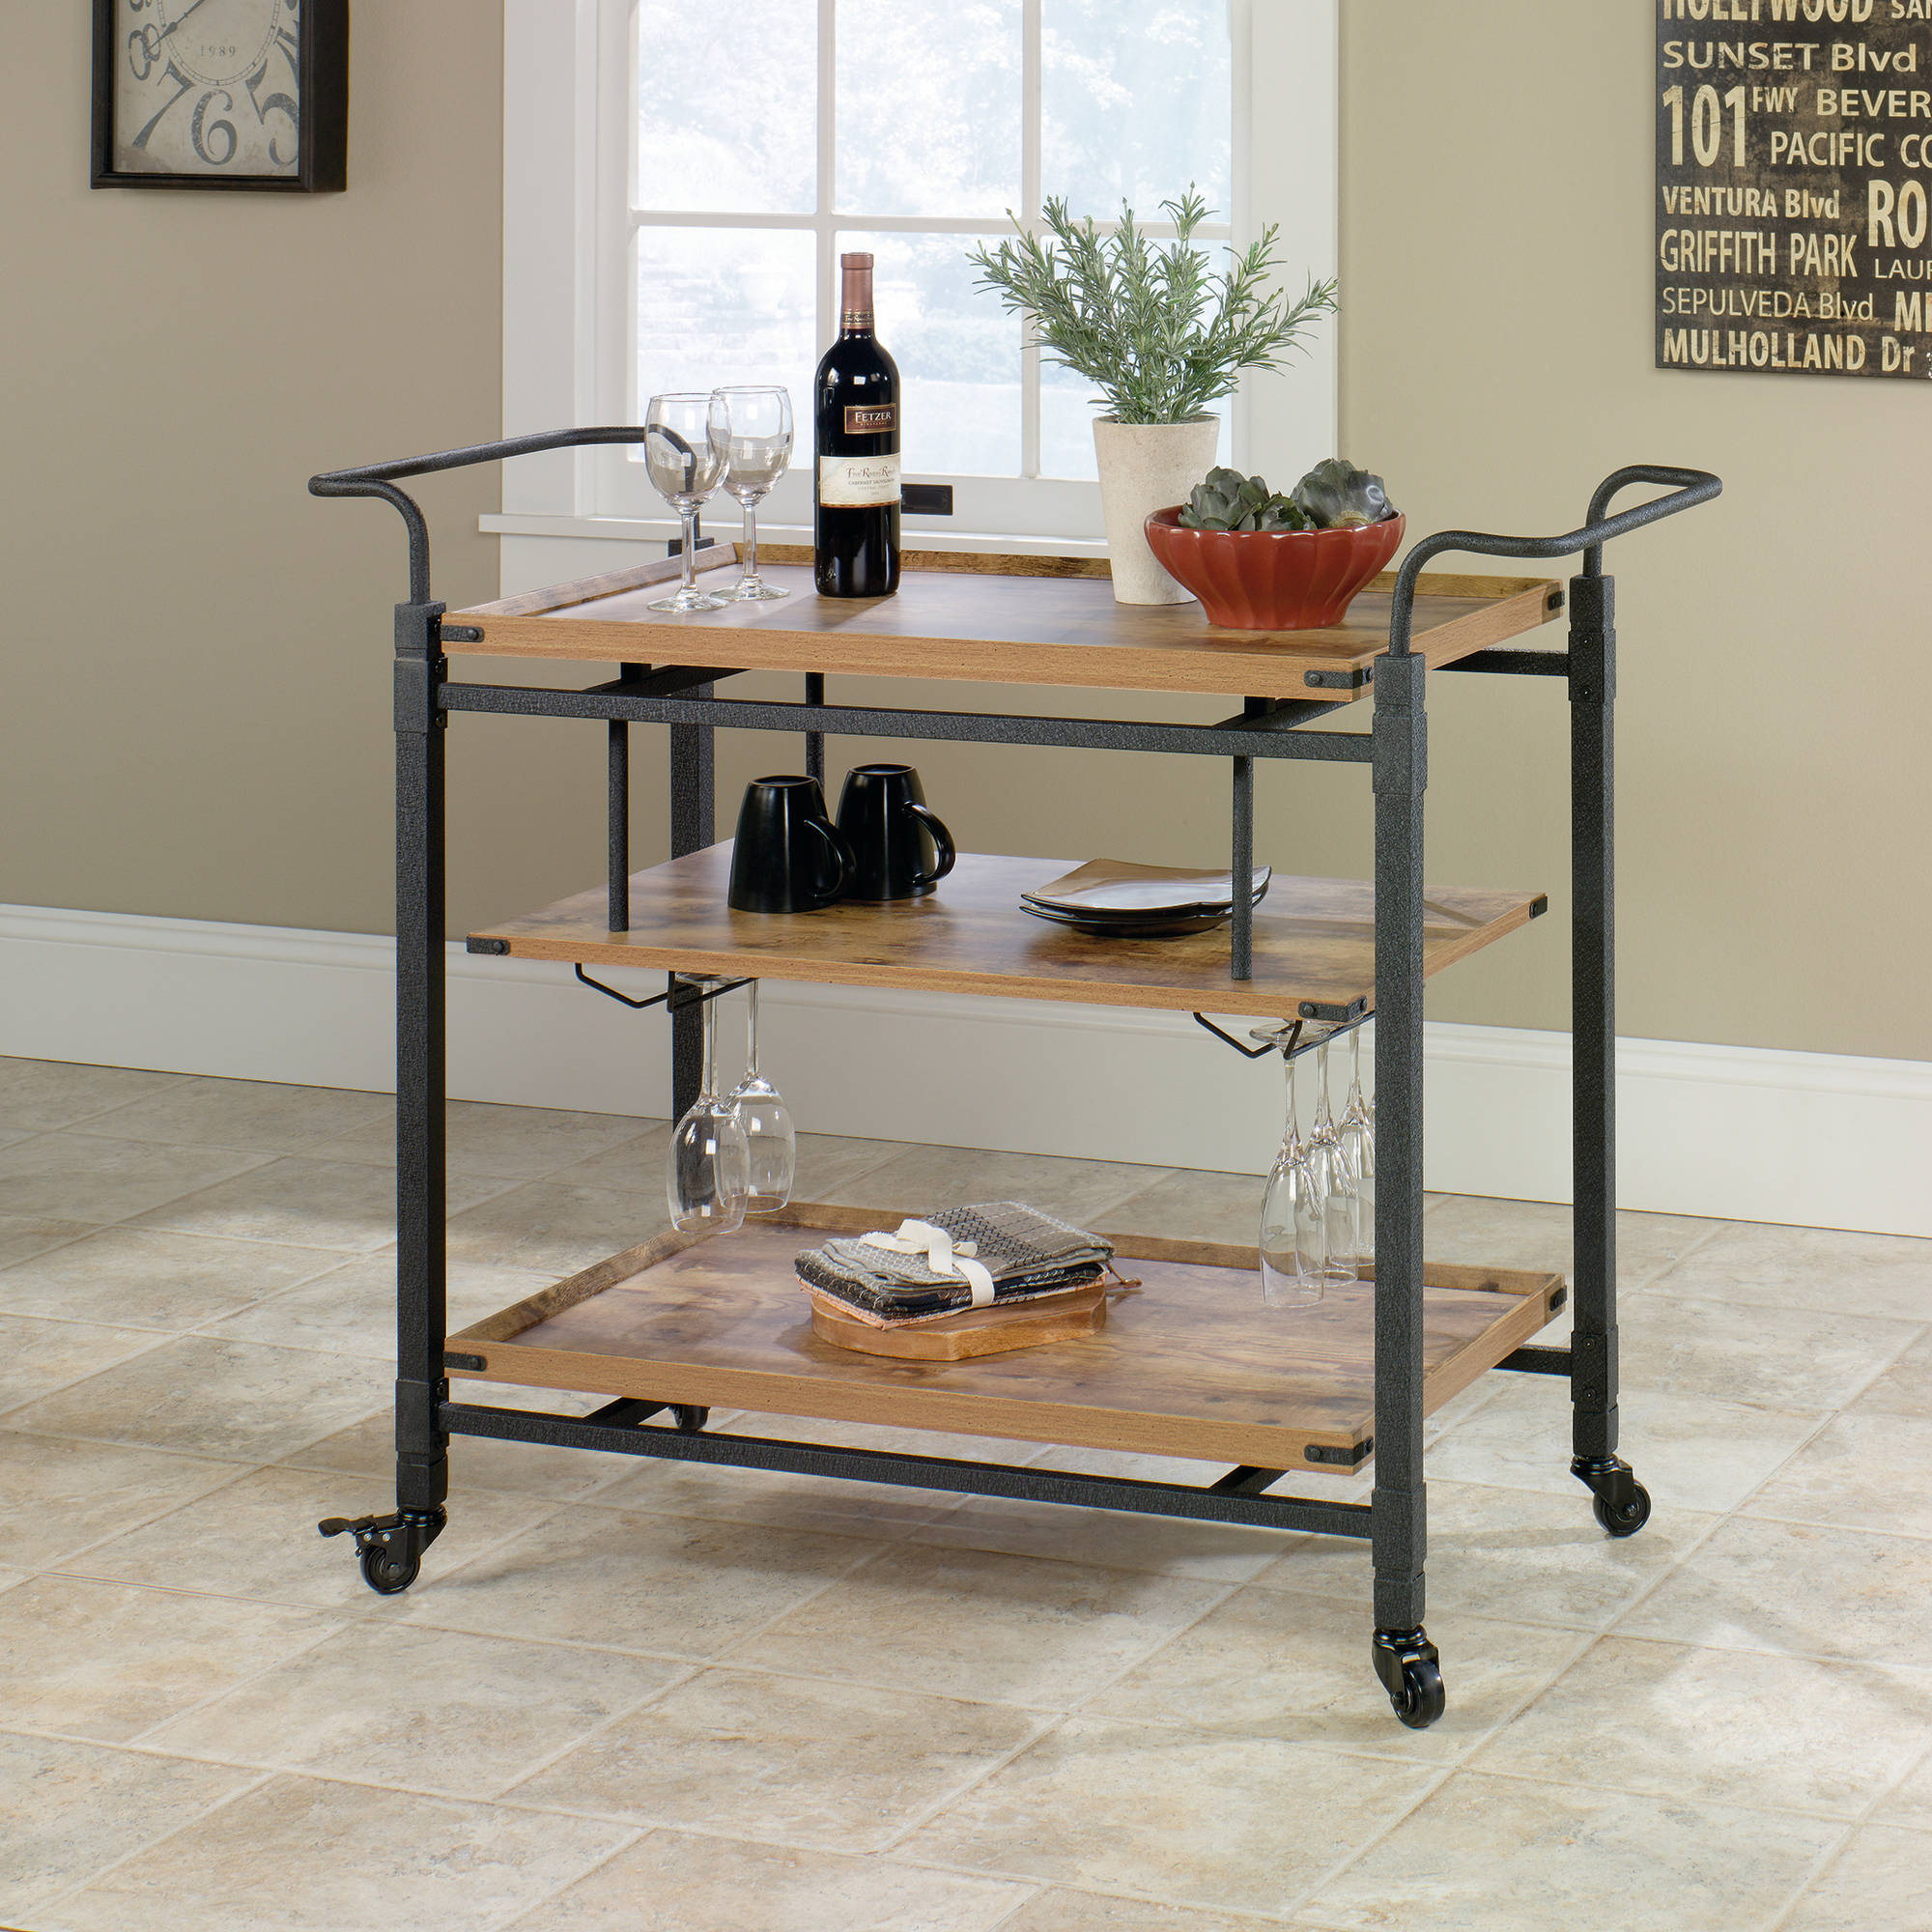 better homes and gardens rustic country bar cart, antiqued black